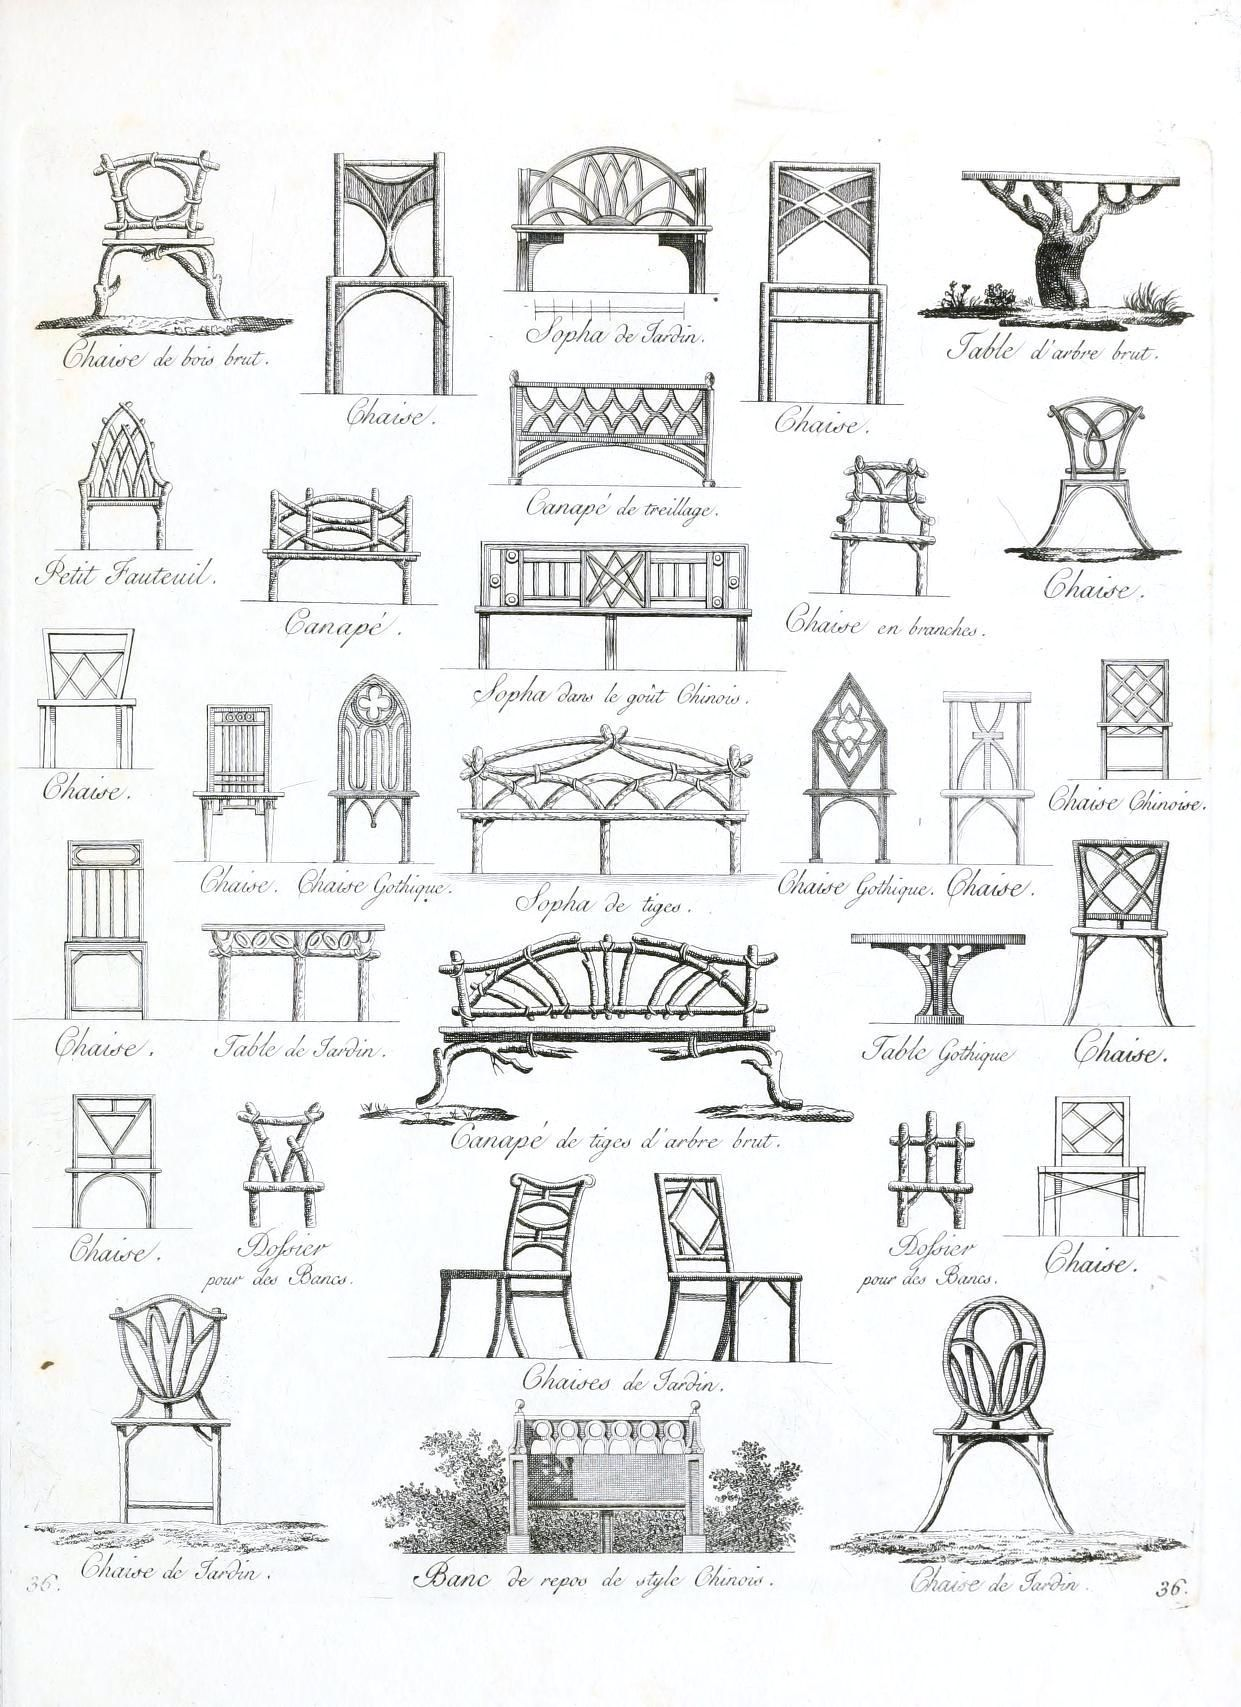 Vintage European Garden Furniture Design Printable From